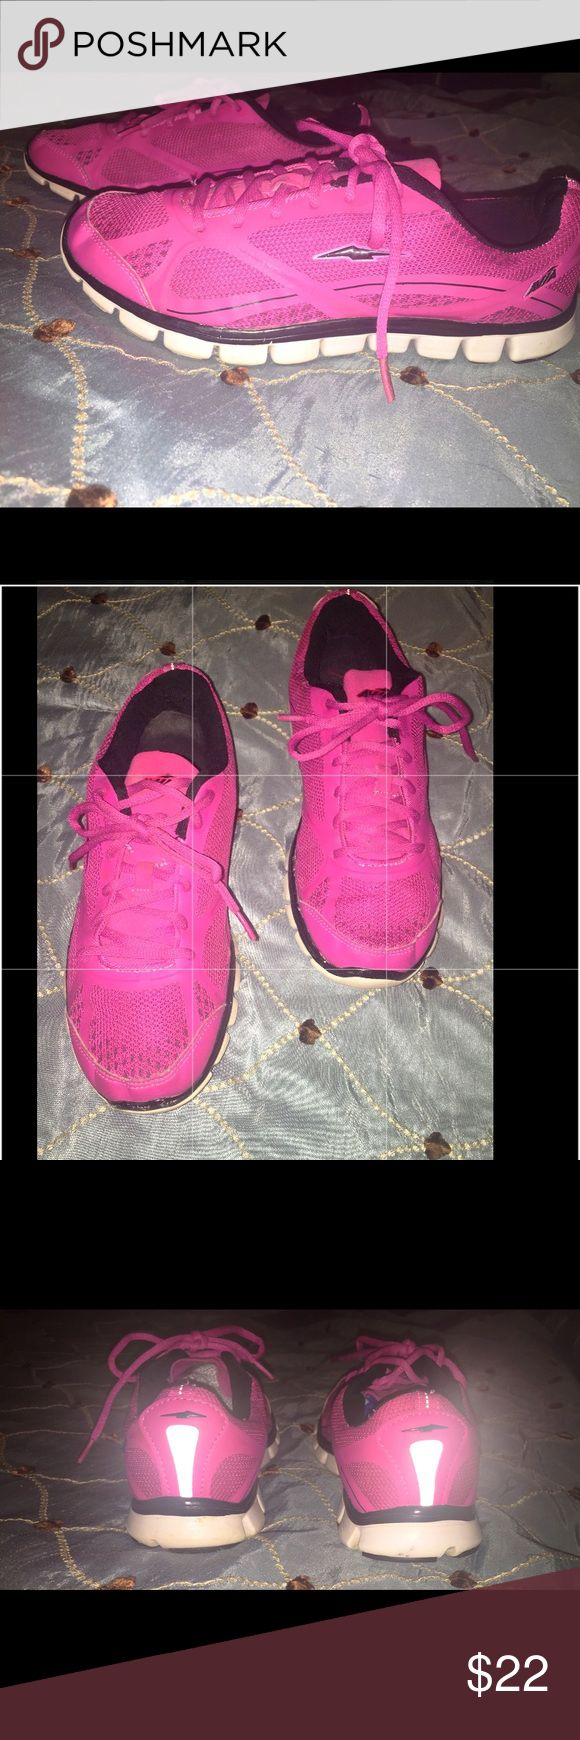 💋BRIGHT & BEAUTIFUL PINK Athletic Shoes Size 8. Only worn a couple of times. EXCELLENT CONDITION! Avia Shoes Sneakers